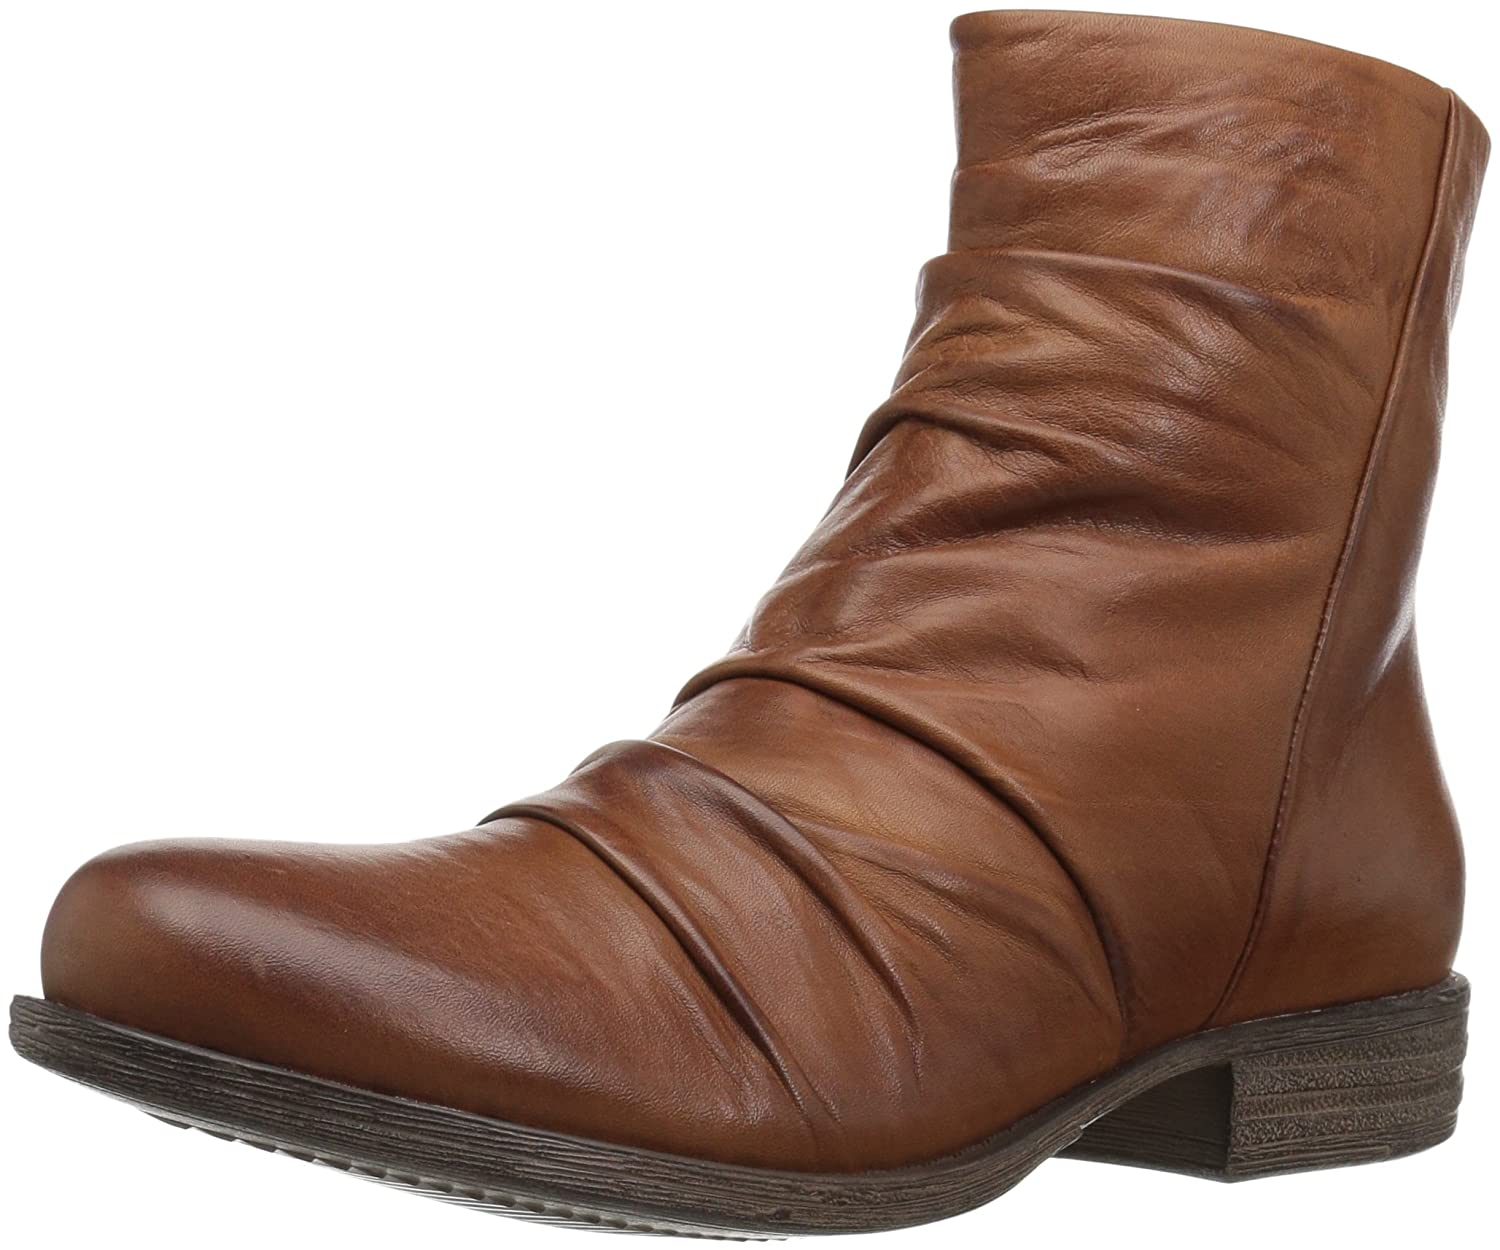 Miz Mooz Women's Lane Ankle Boot B06XPFNY88 8 B(M) US|210-brown